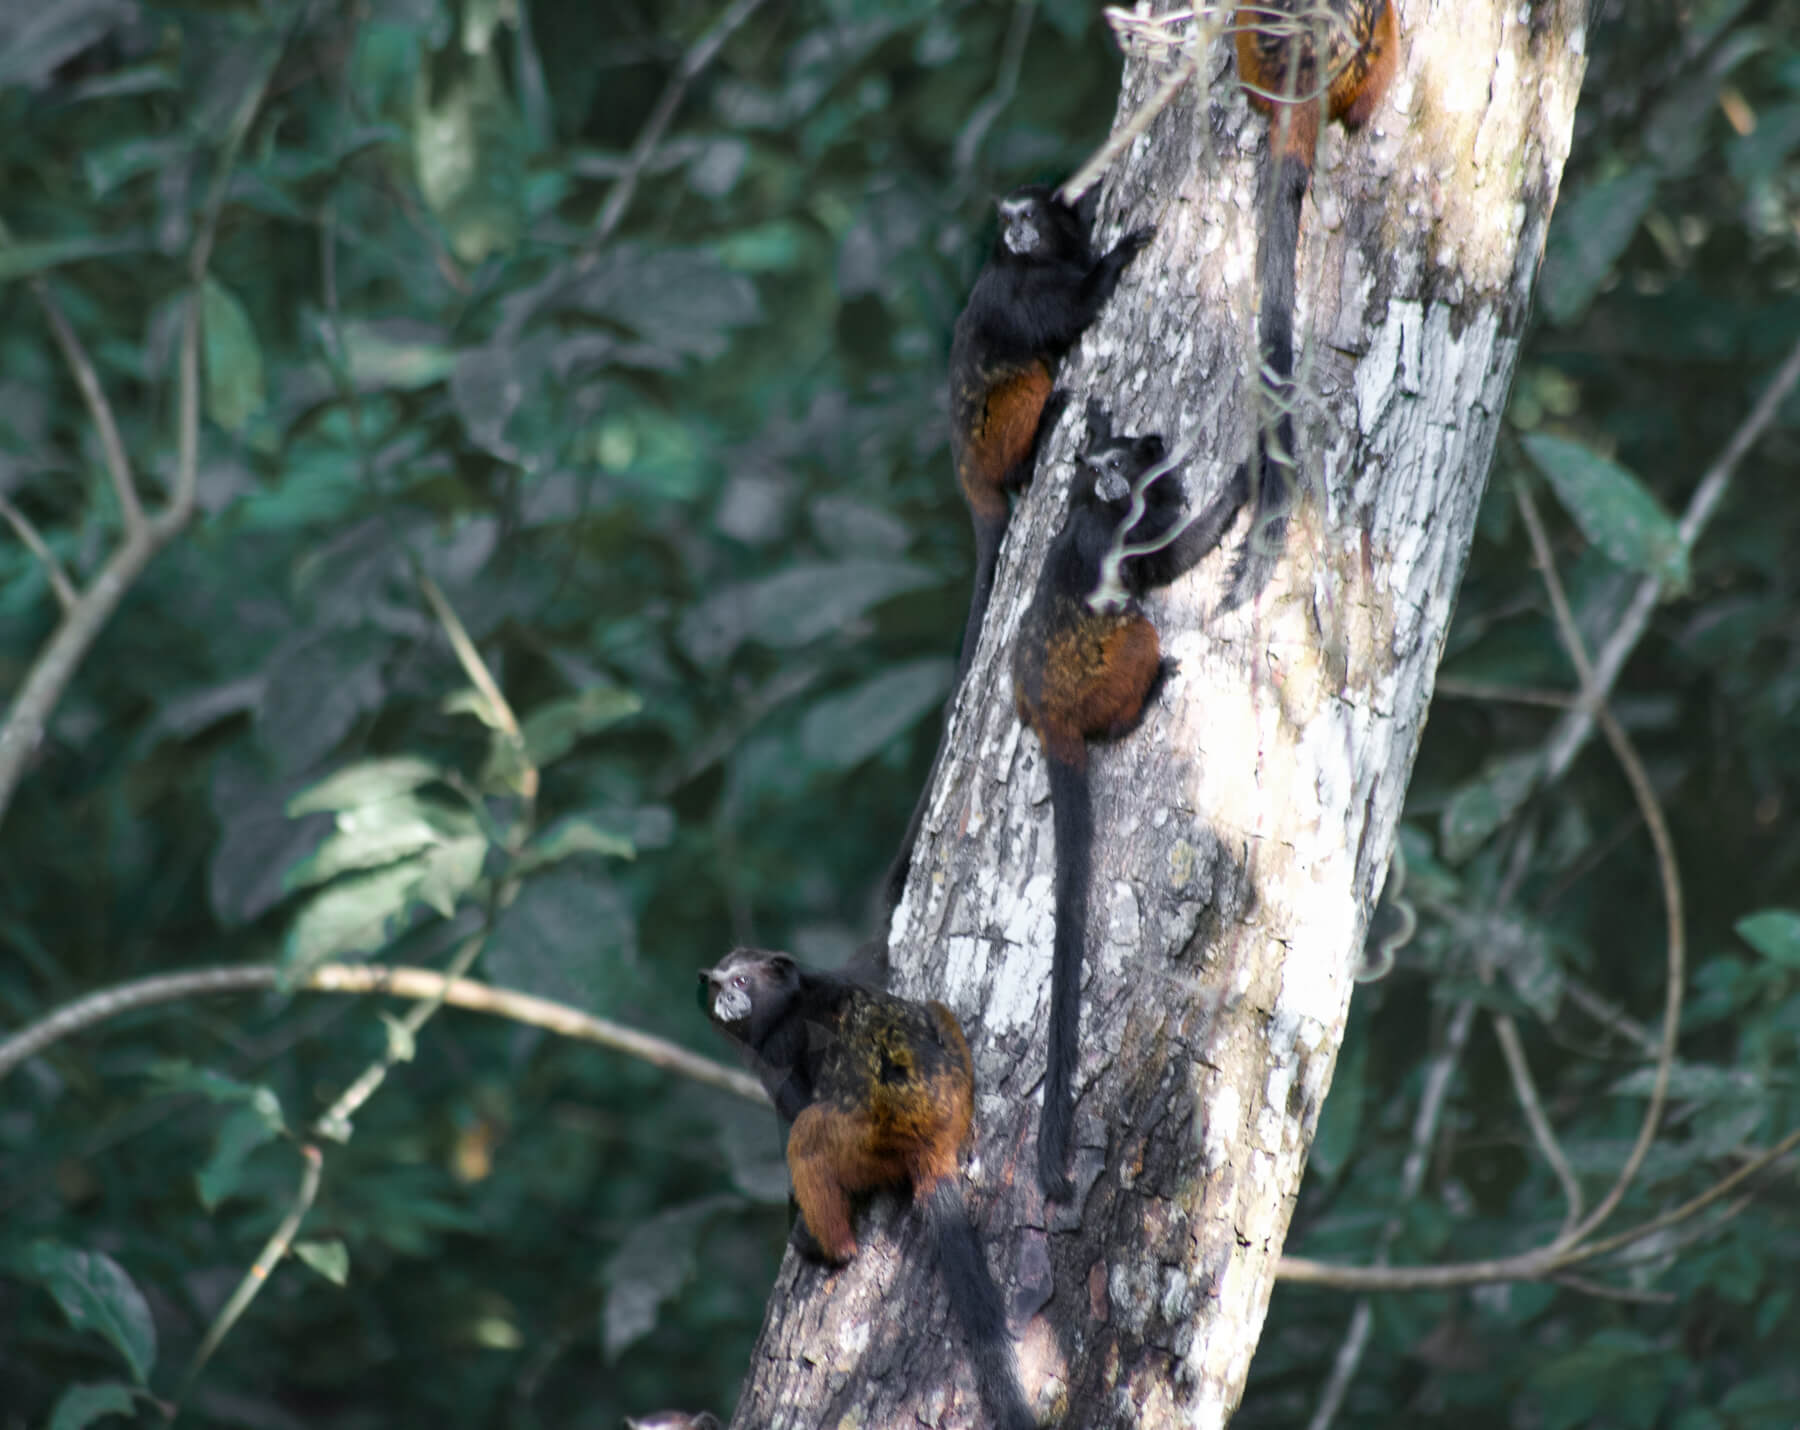 A family of 4 Tamarin monkeys hanging on to a tree trunk and looking back at the camera